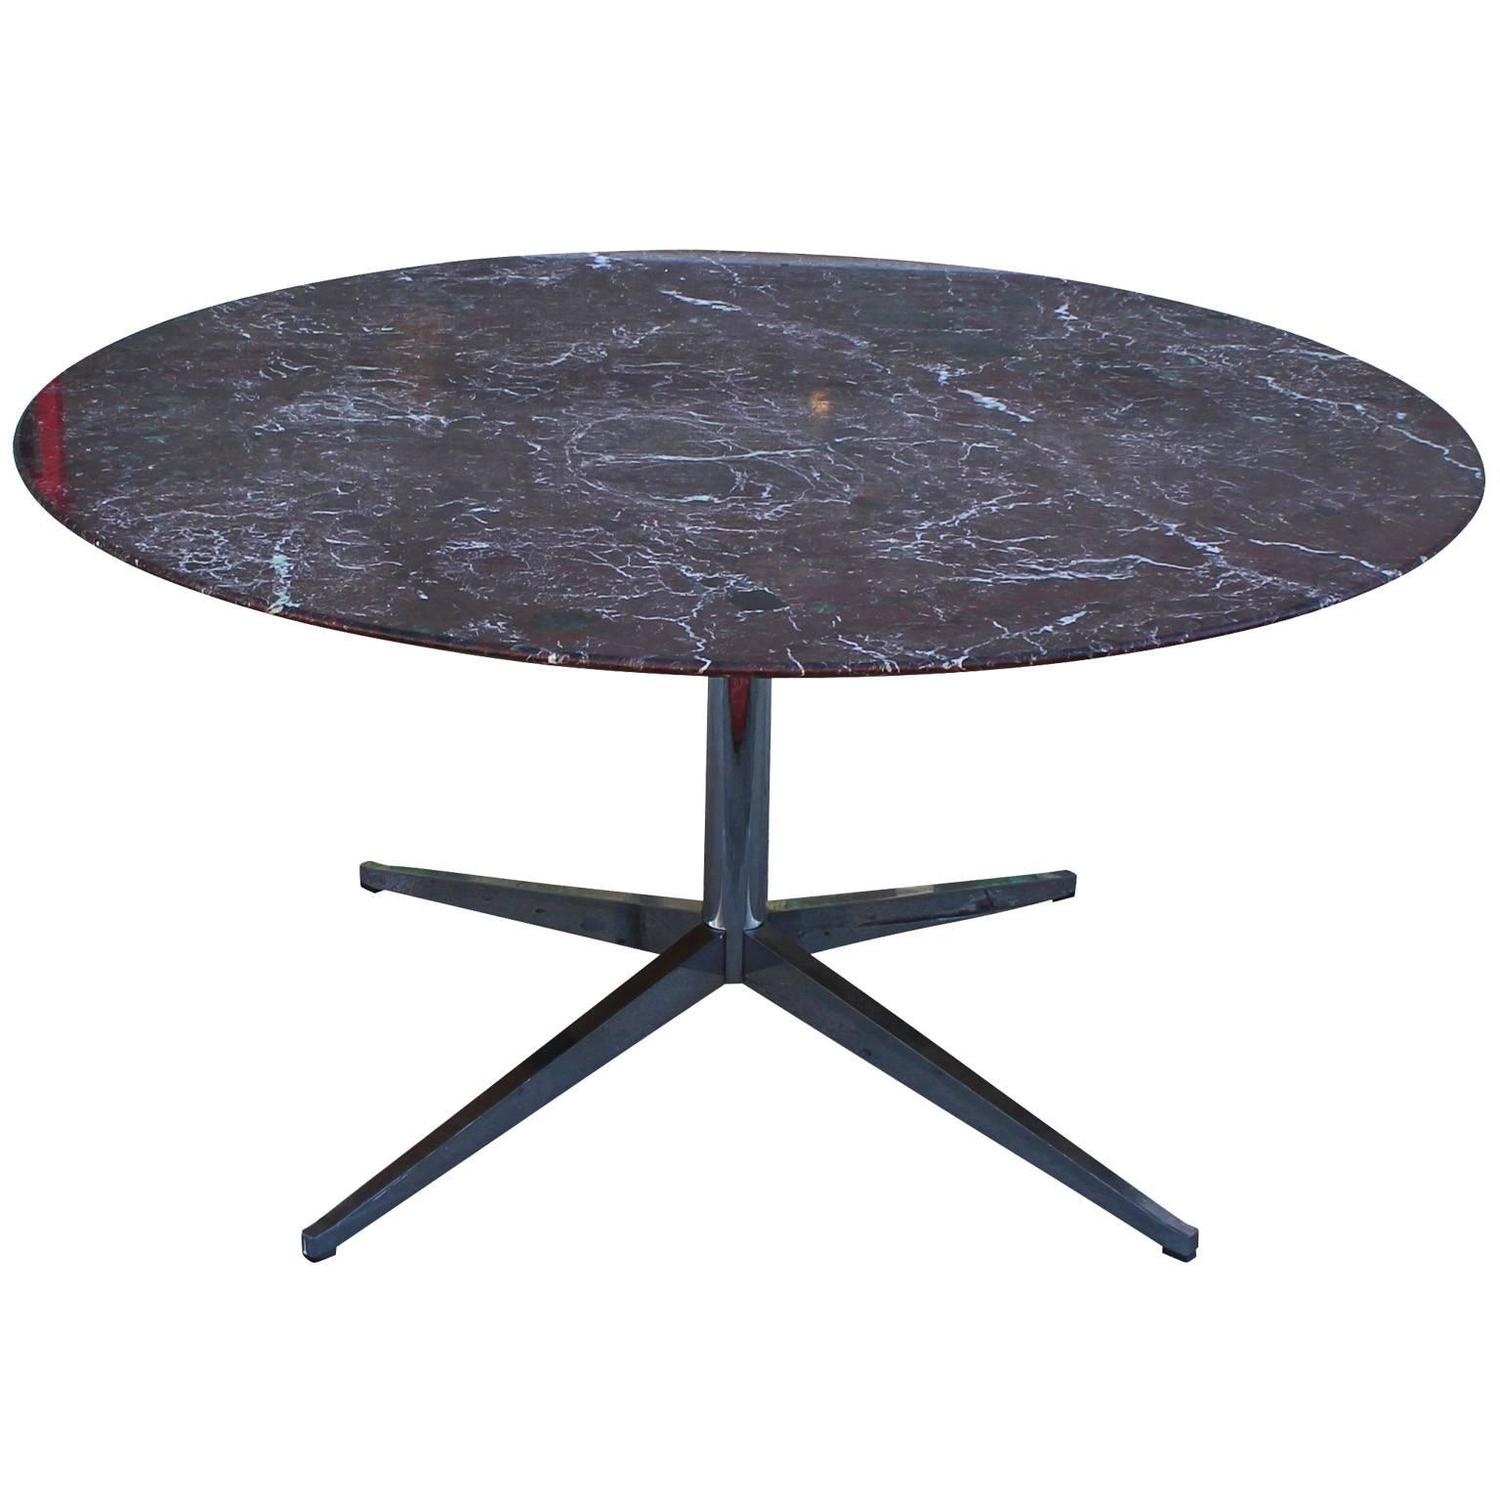 Florence Knoll Marble Topped Round Dining Table At 1stdibs